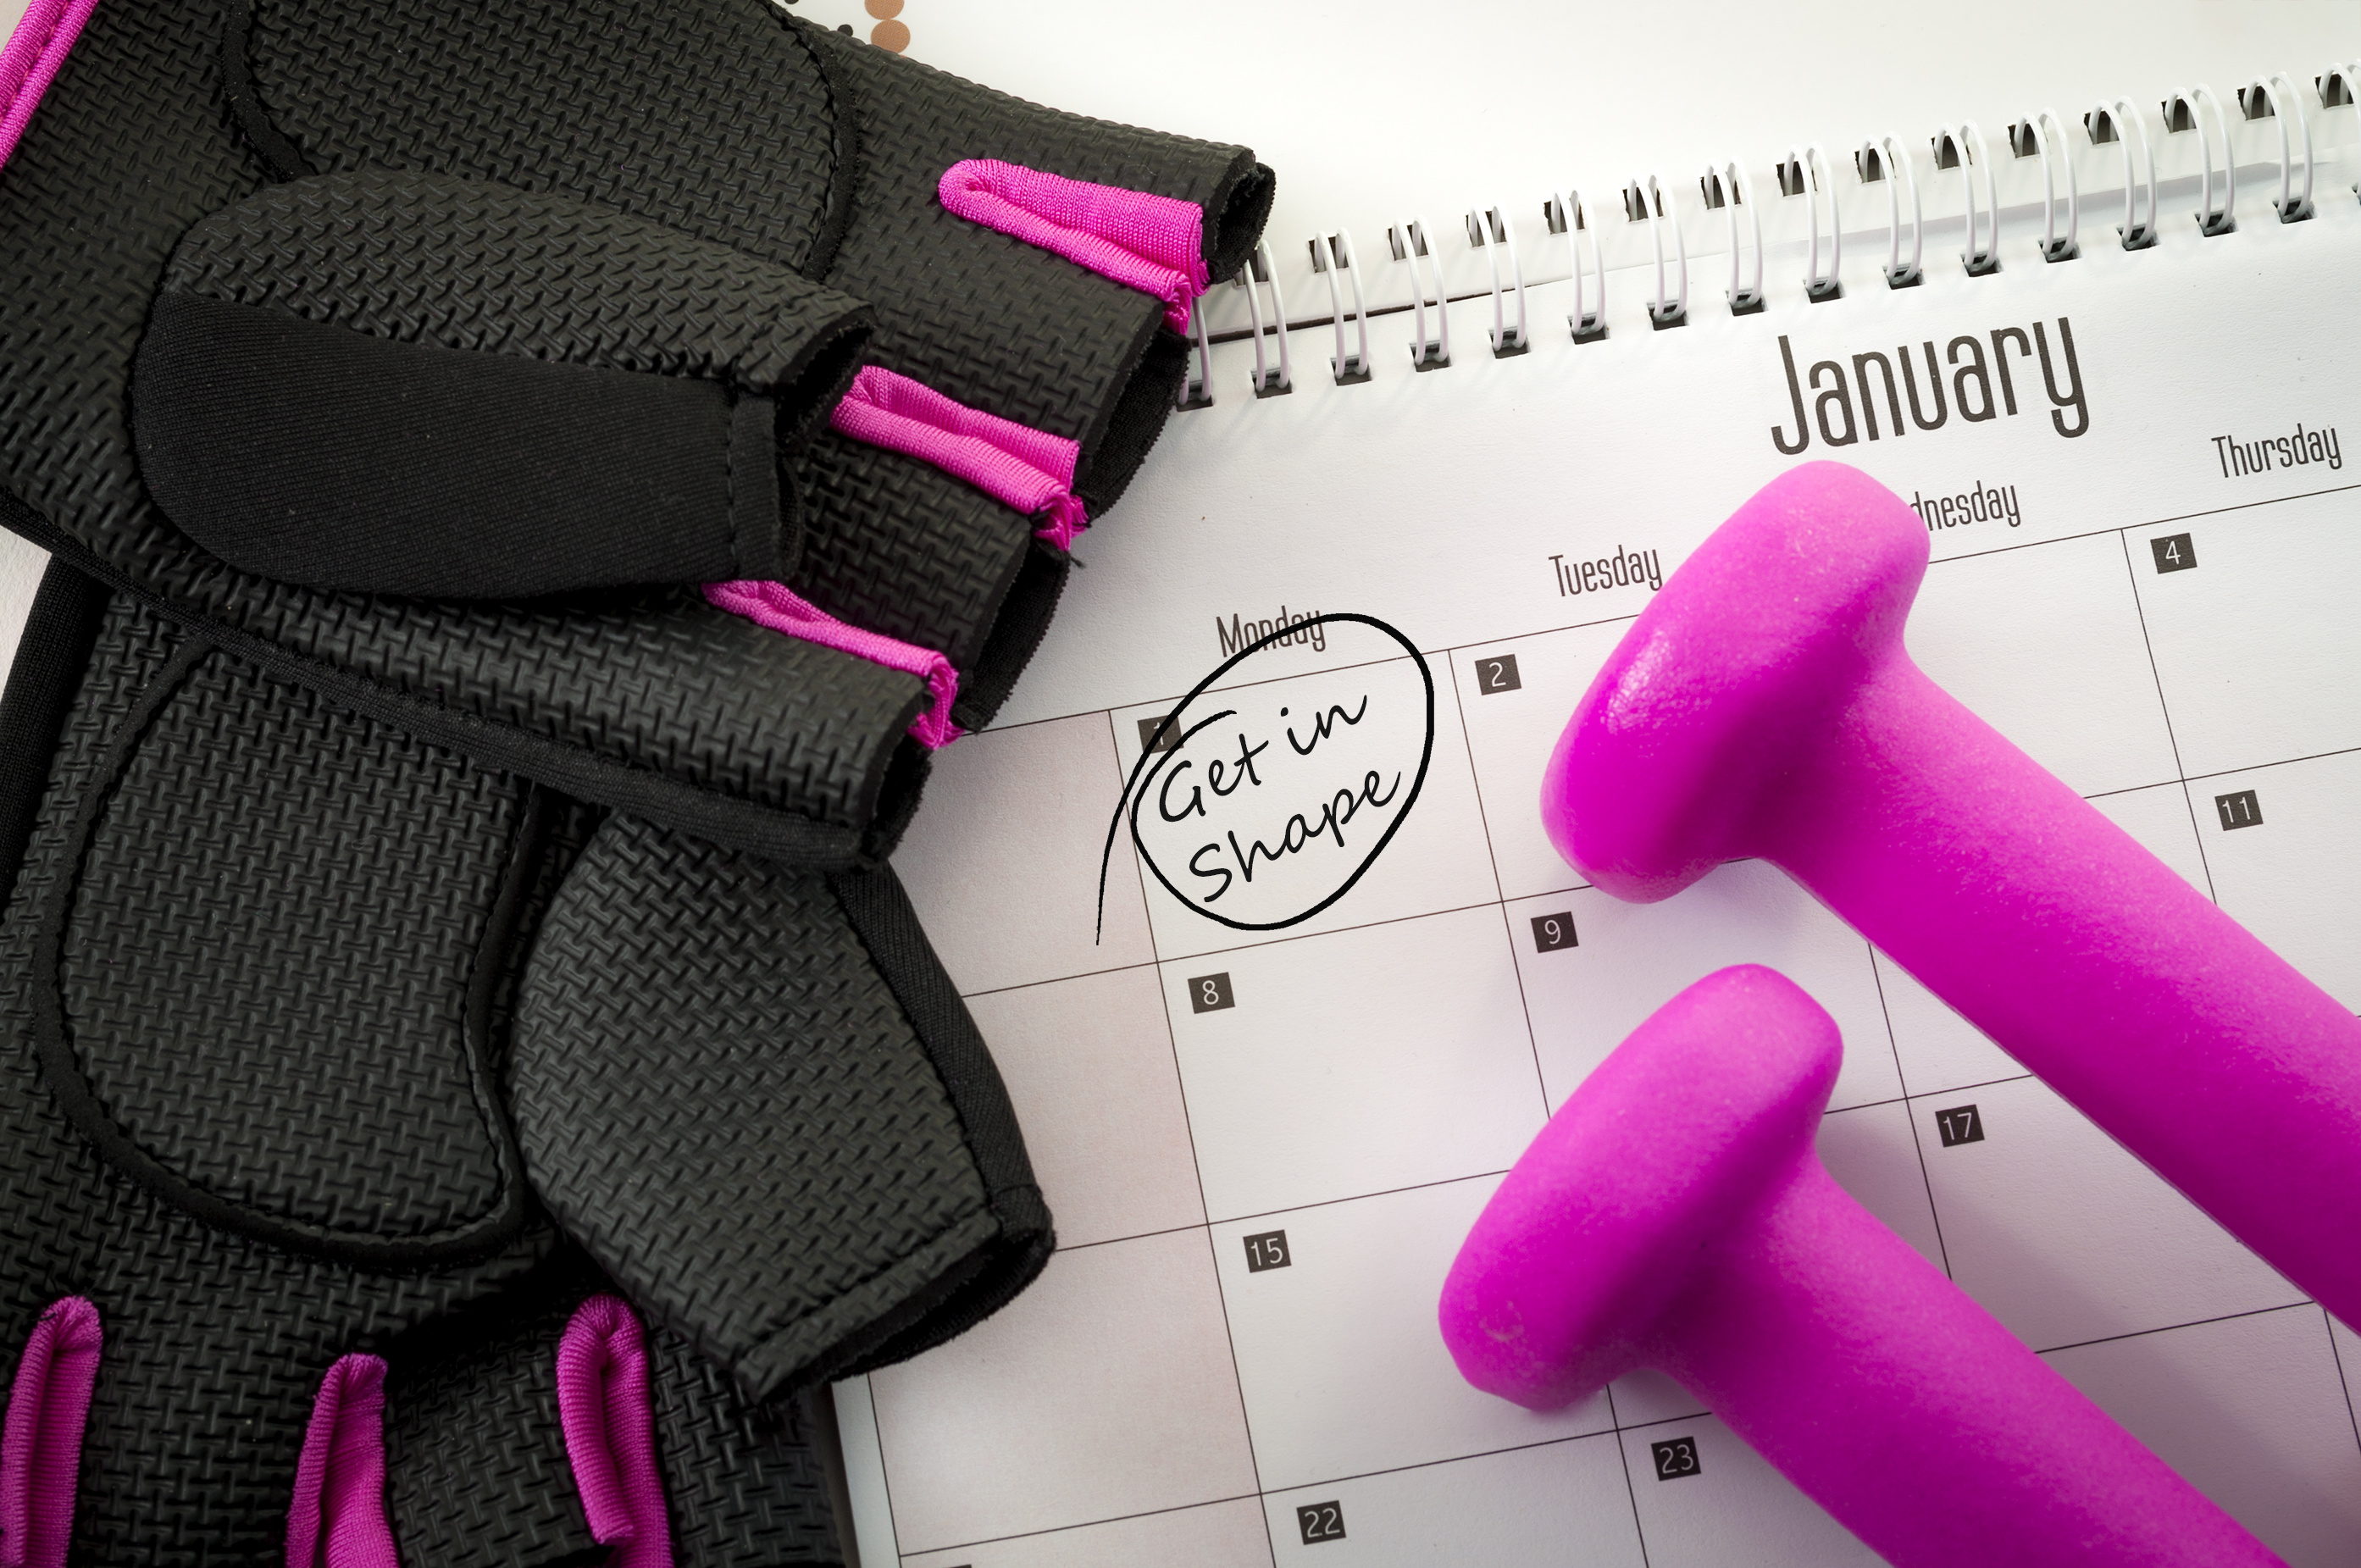 Doe 2014-2019 Calendar New year resolution and the desire to get in shape concept with a